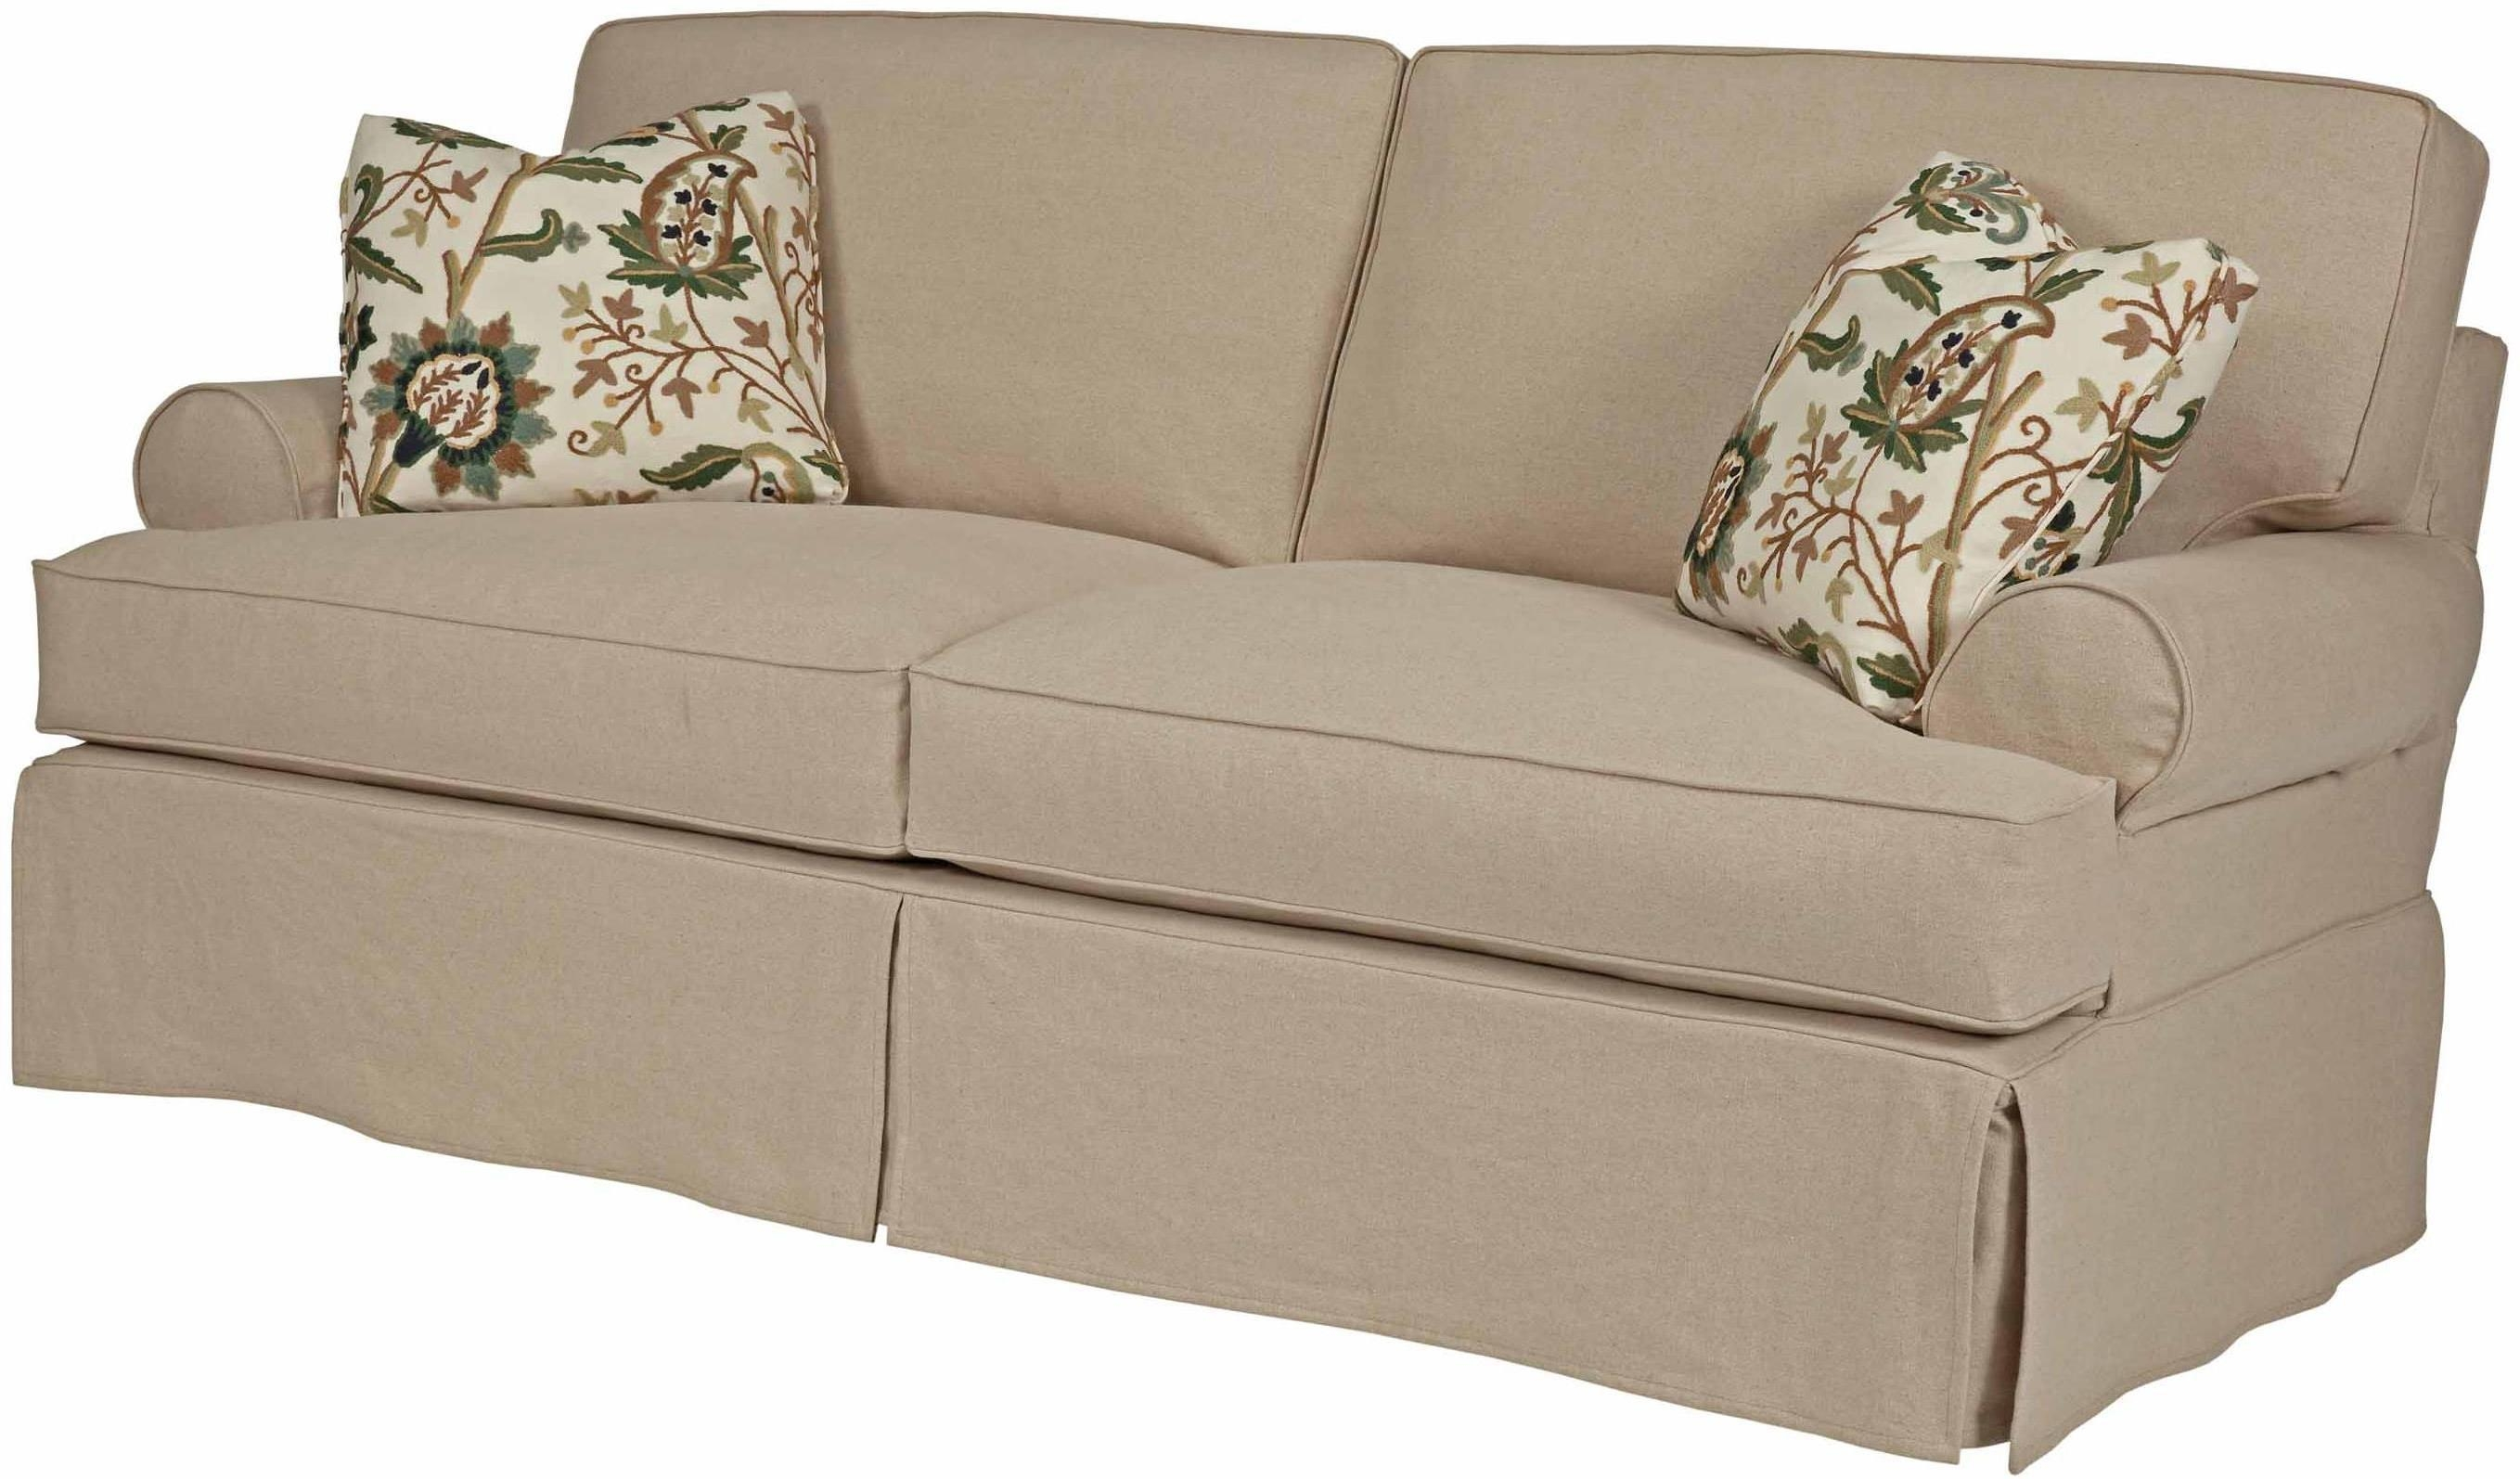 Sofas Center : Decor T Cushion Sofa Slipcover For Oversized Chair Regarding 3 Piece Sofa Slipcovers (Image 20 of 20)